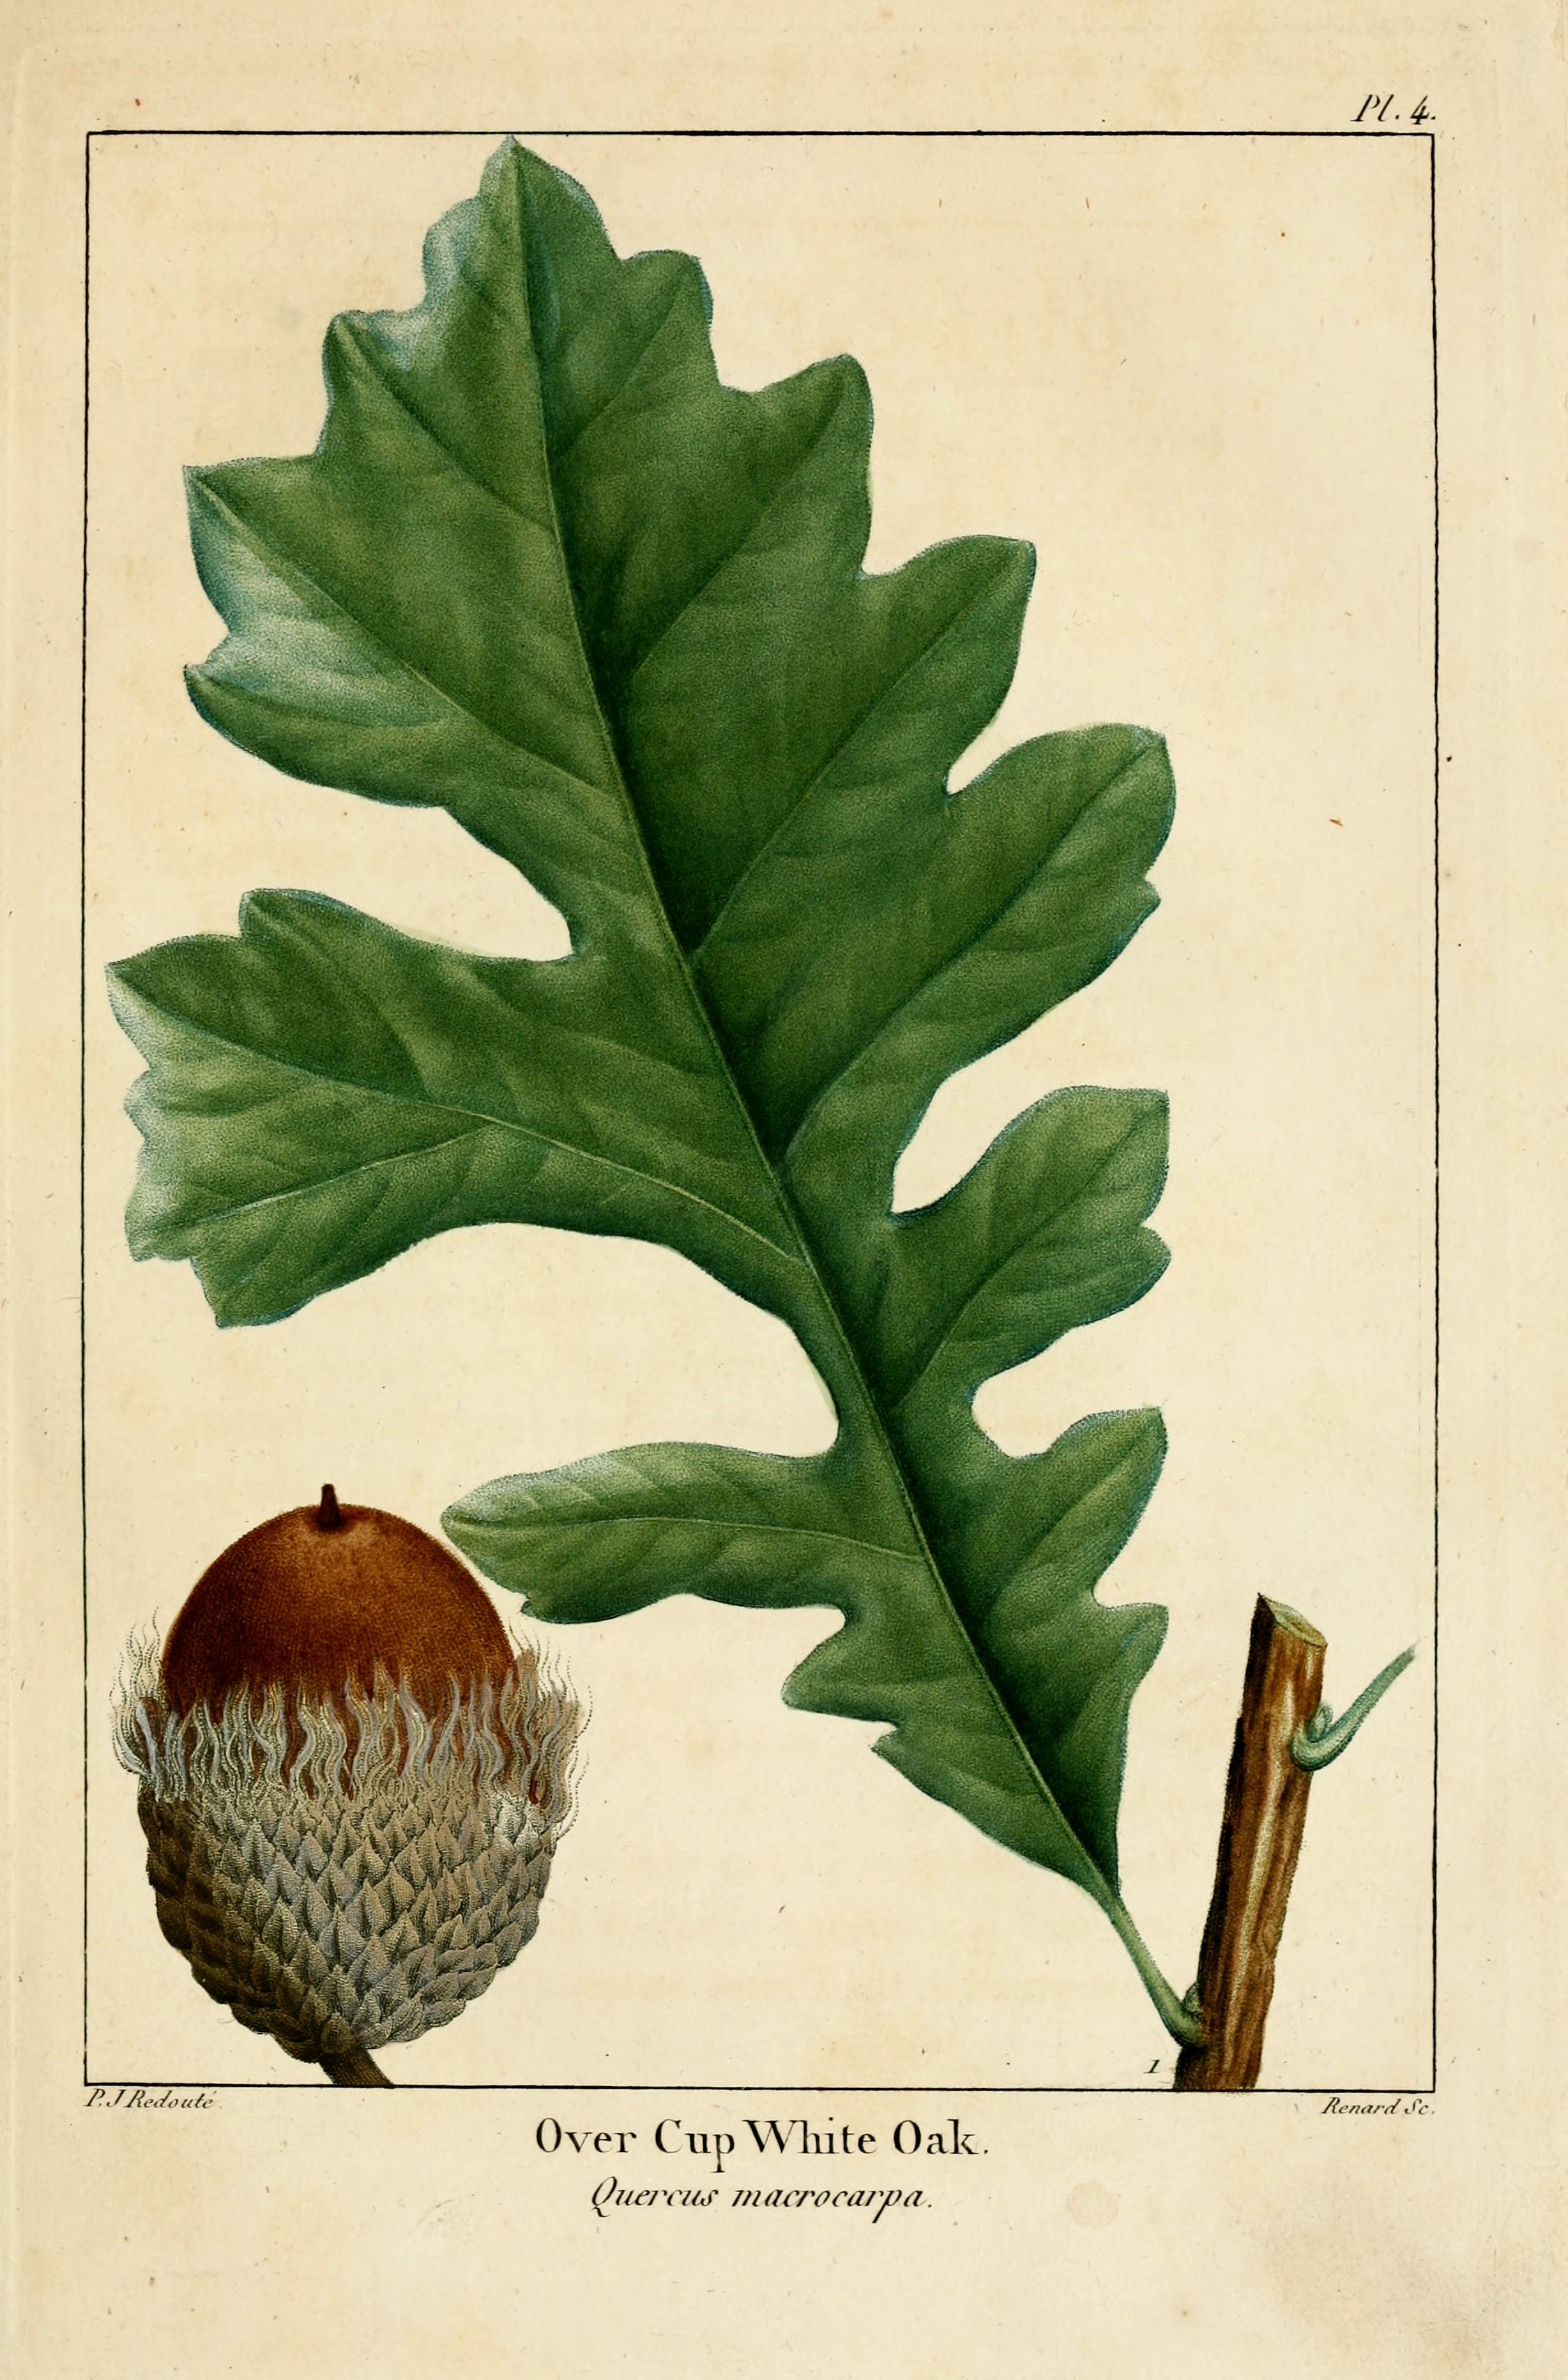 Exemple d herbier original trendy fig plate uclastra filix masud thomas moore with exemple d - Exemple d herbier original ...